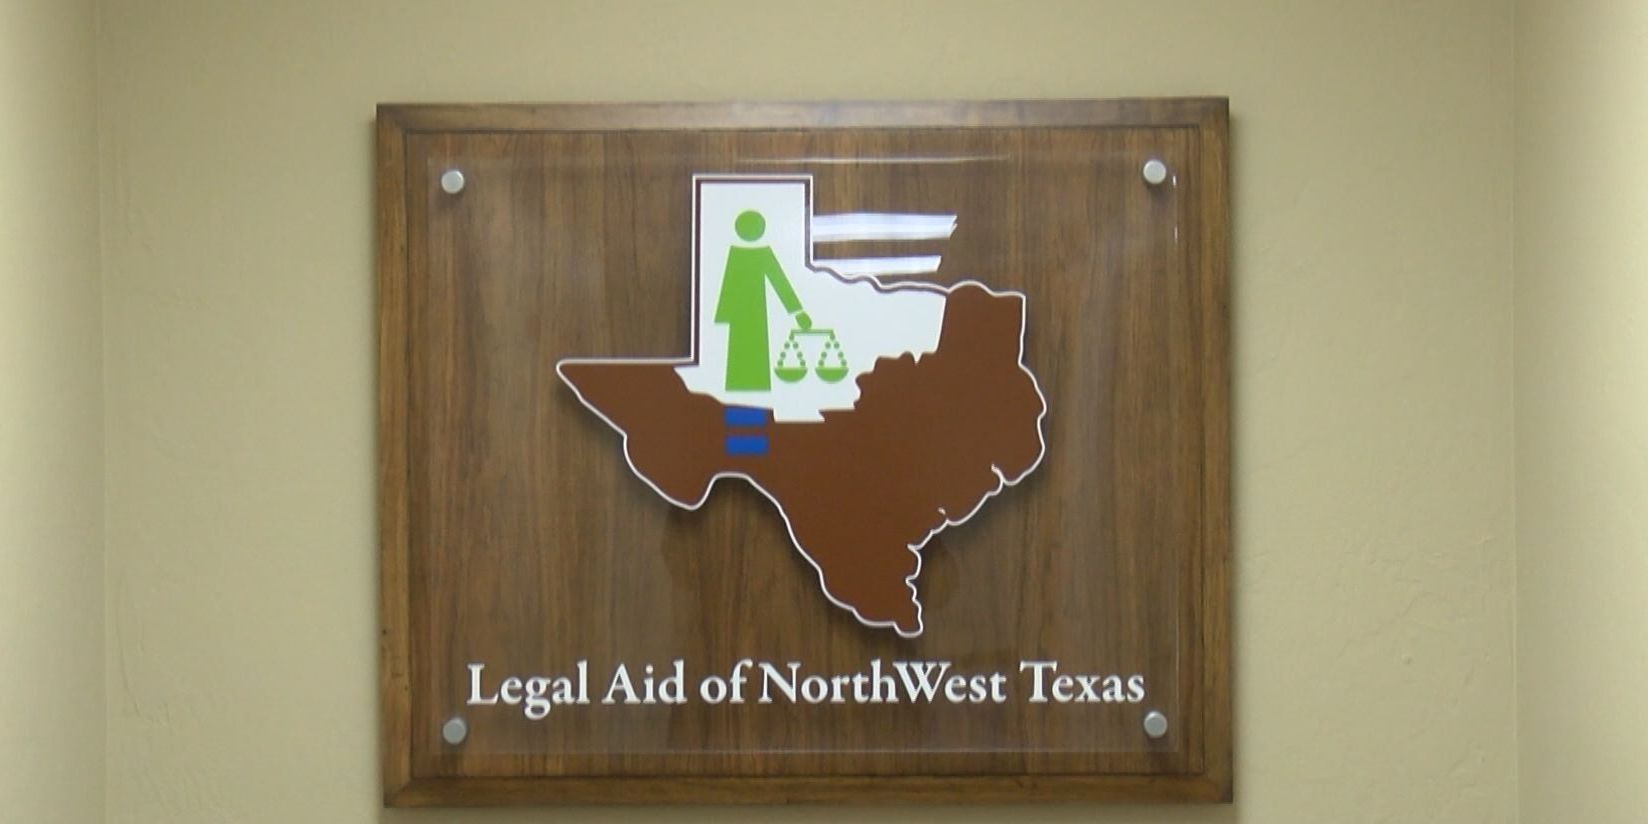 Legal Aid of Northwest Texas hopes to expand free legal help services